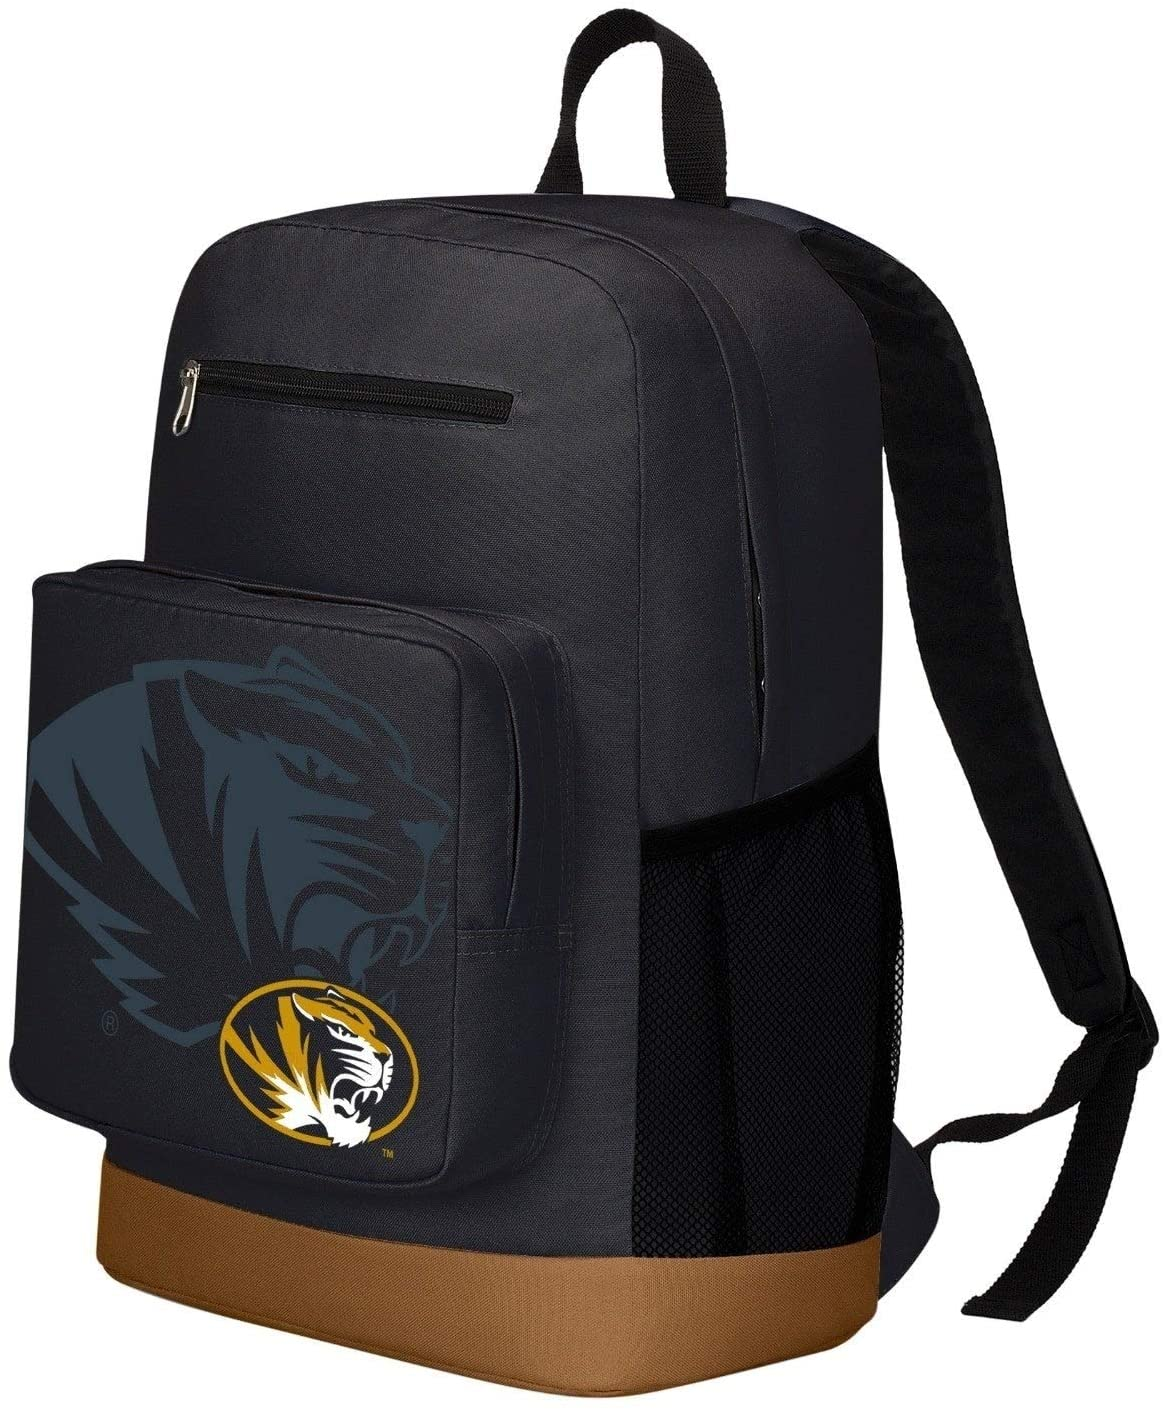 Missouri Tigers Playmaker Backpack Black Nylon